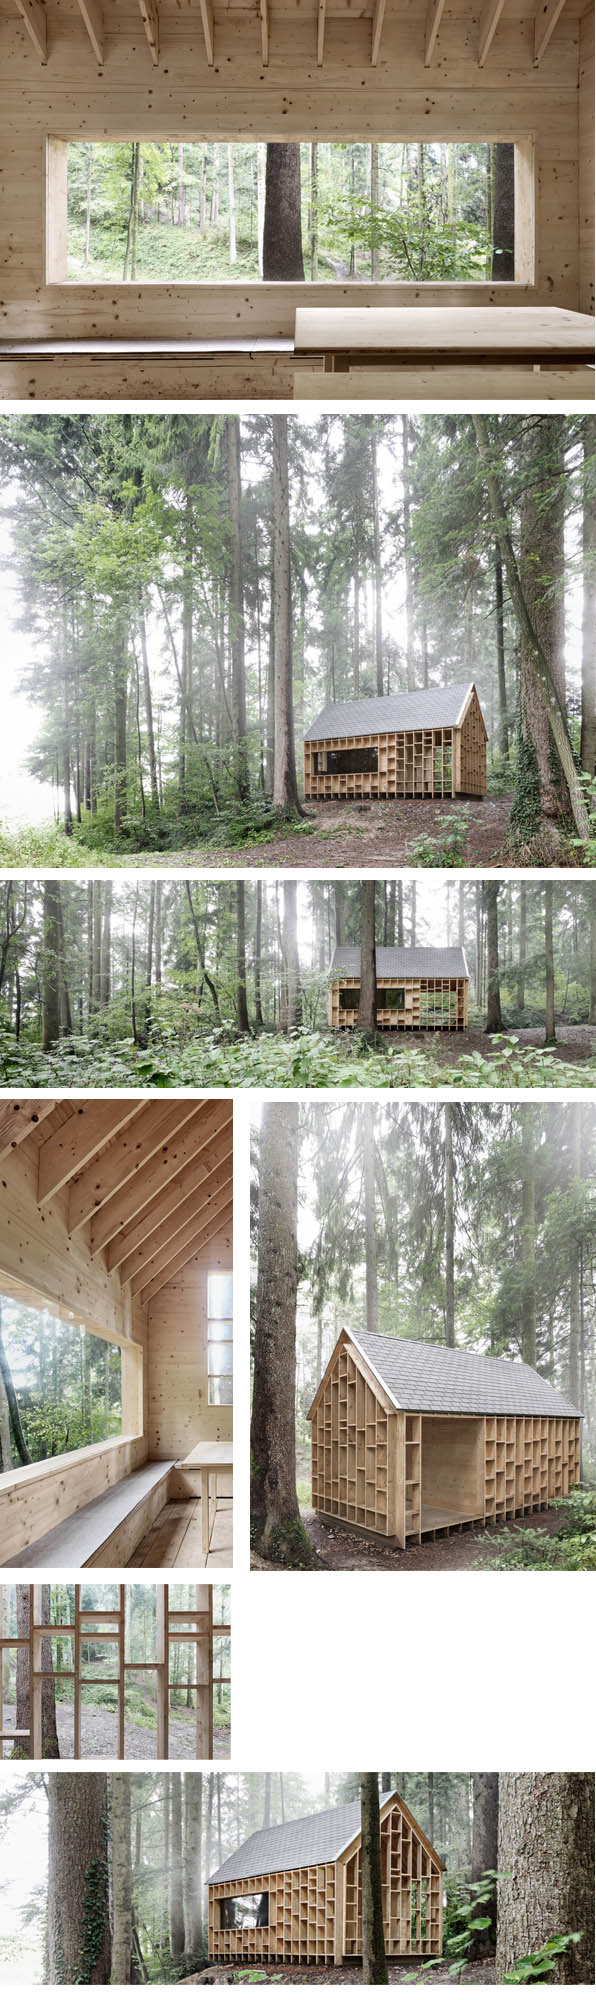 casa buhos bosque en wolfurt © photo adolf bereuter project berndriegger